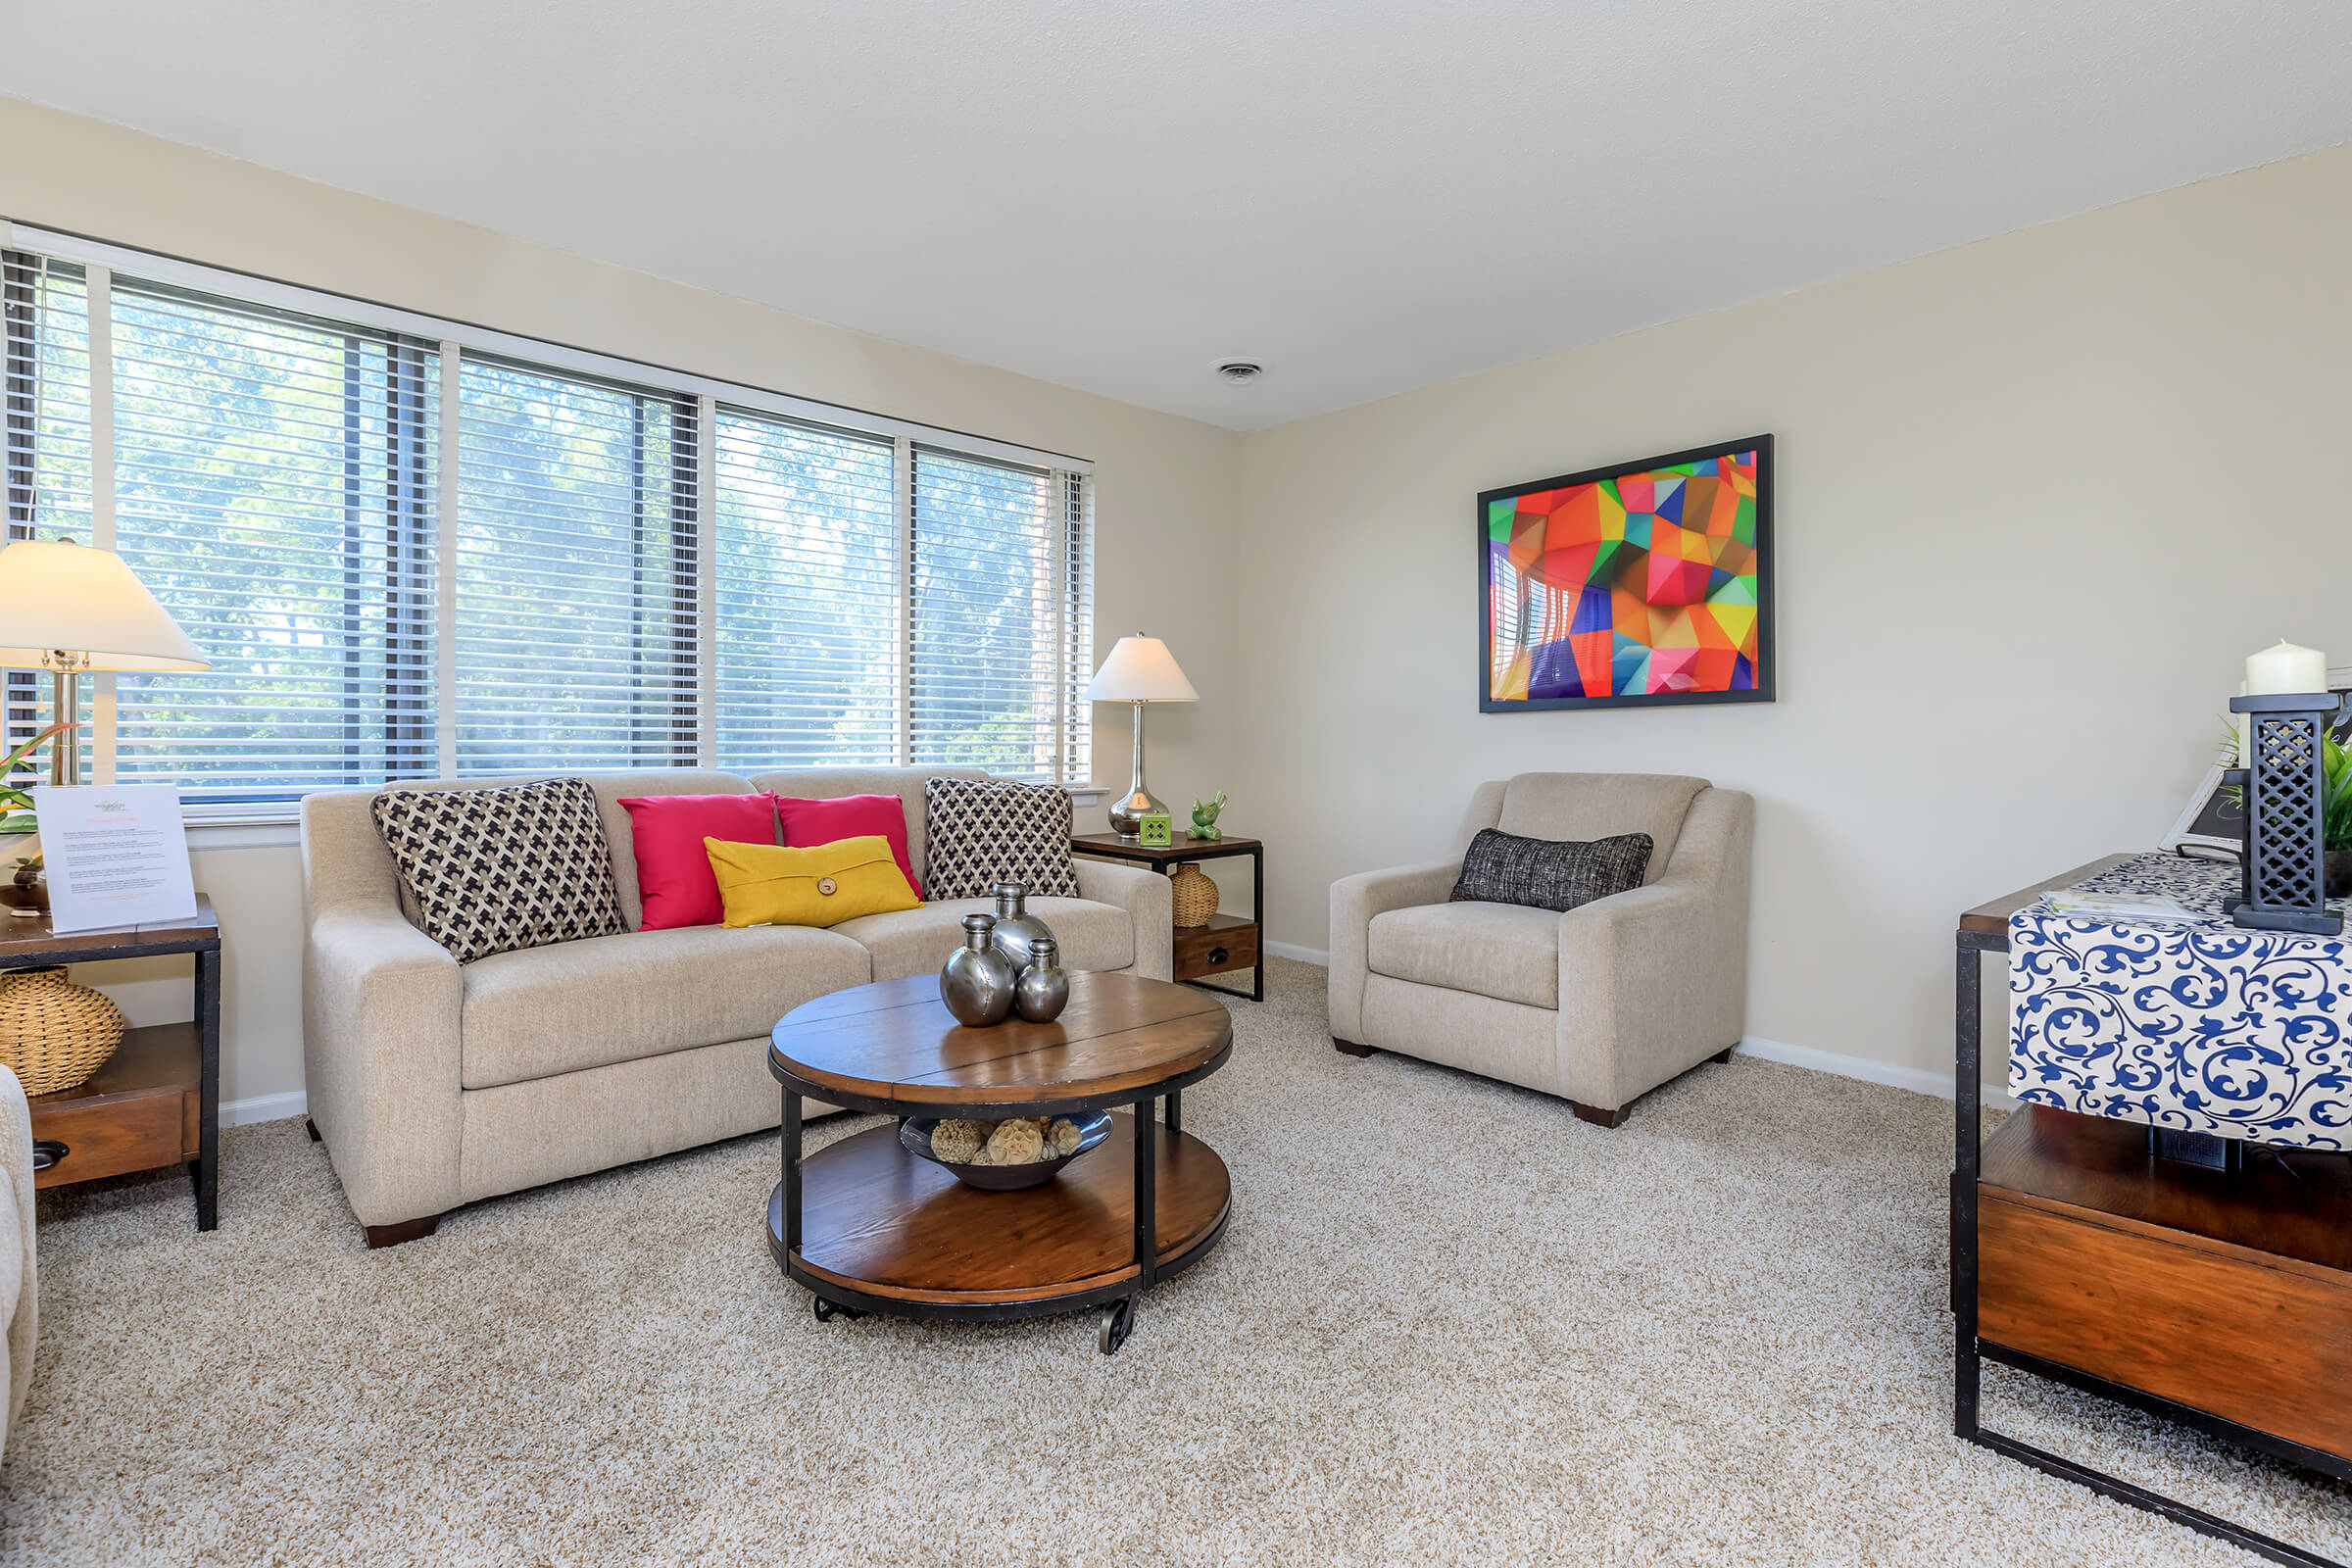 woodcliff estates apartments in east hartford ct amenities